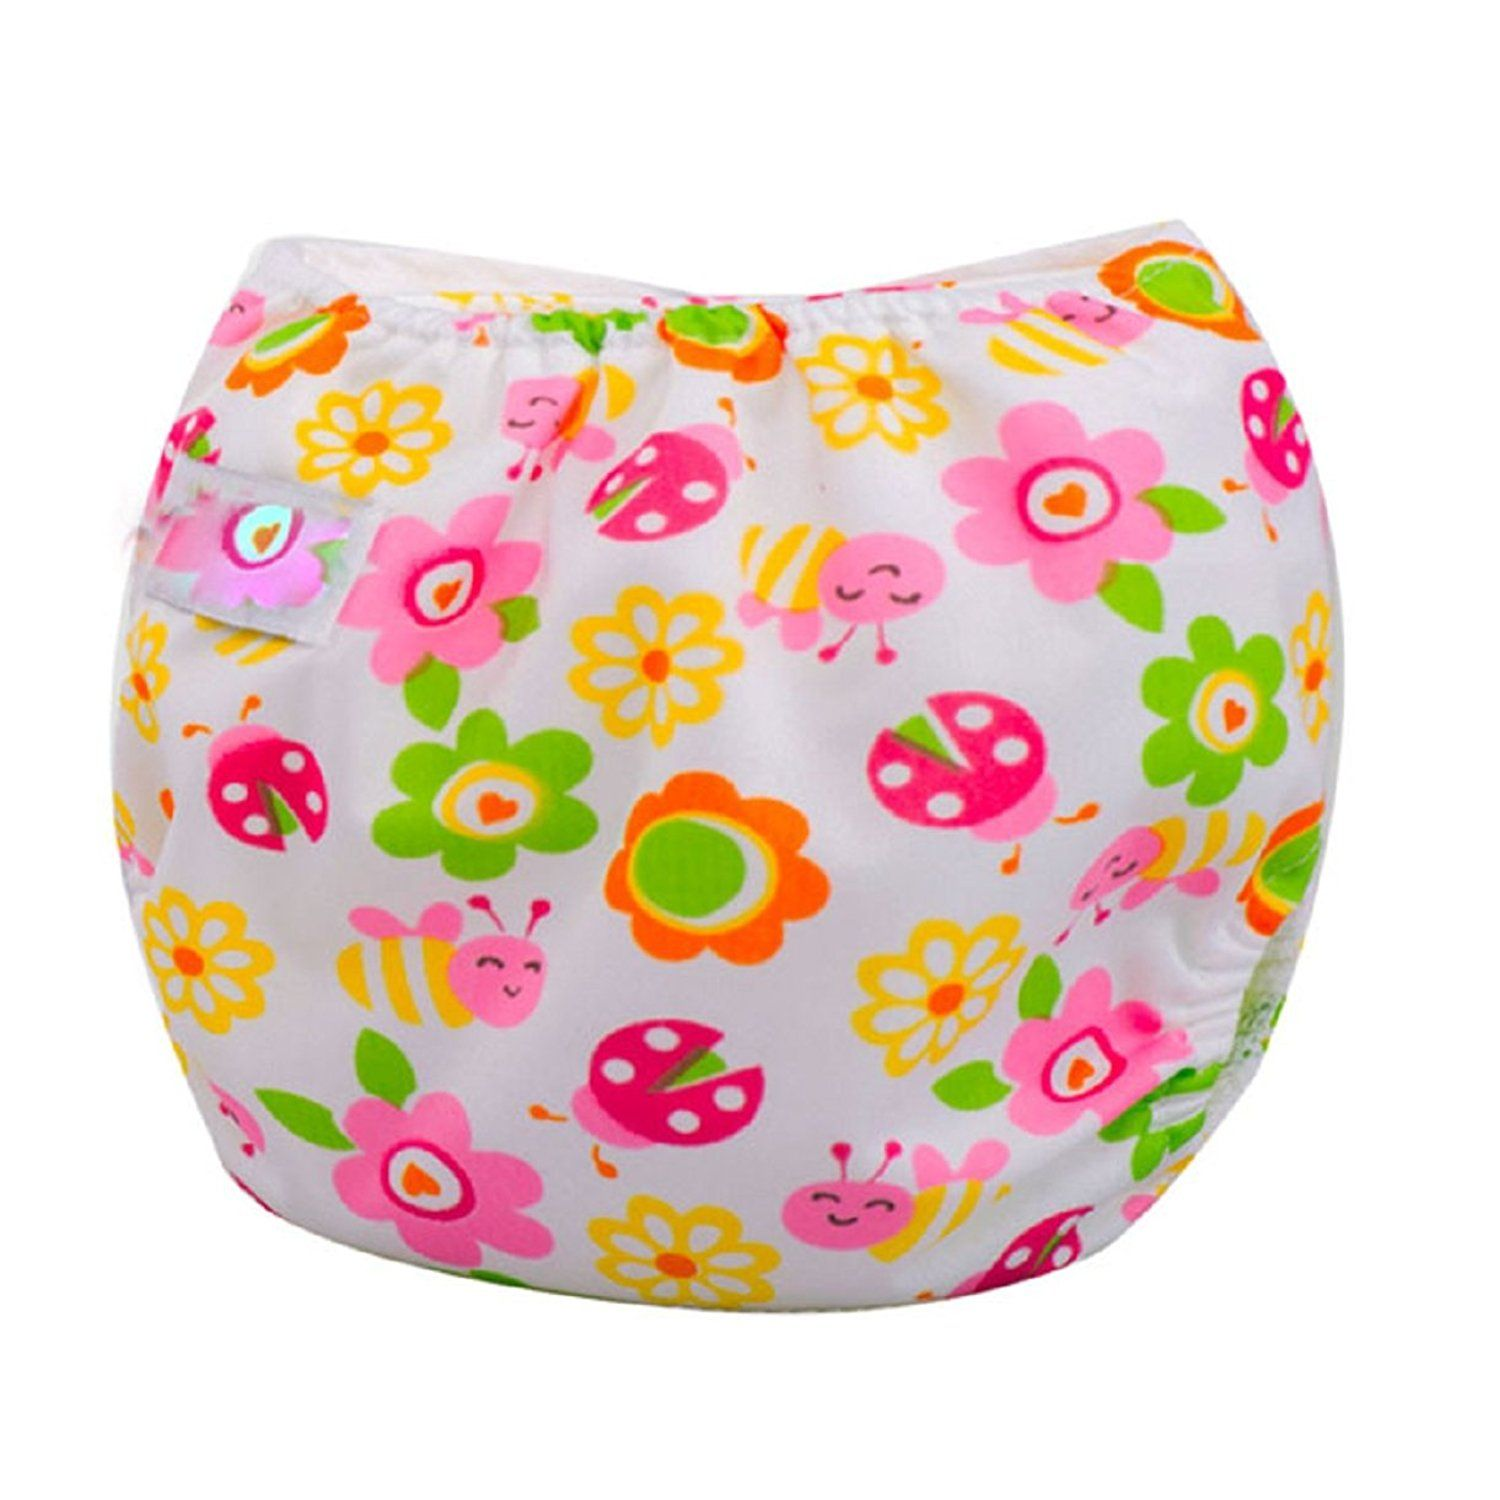 Reusable Washable Baby Infant Cloth Diaper Kids Nappy Cover Adjustable DiapersLH